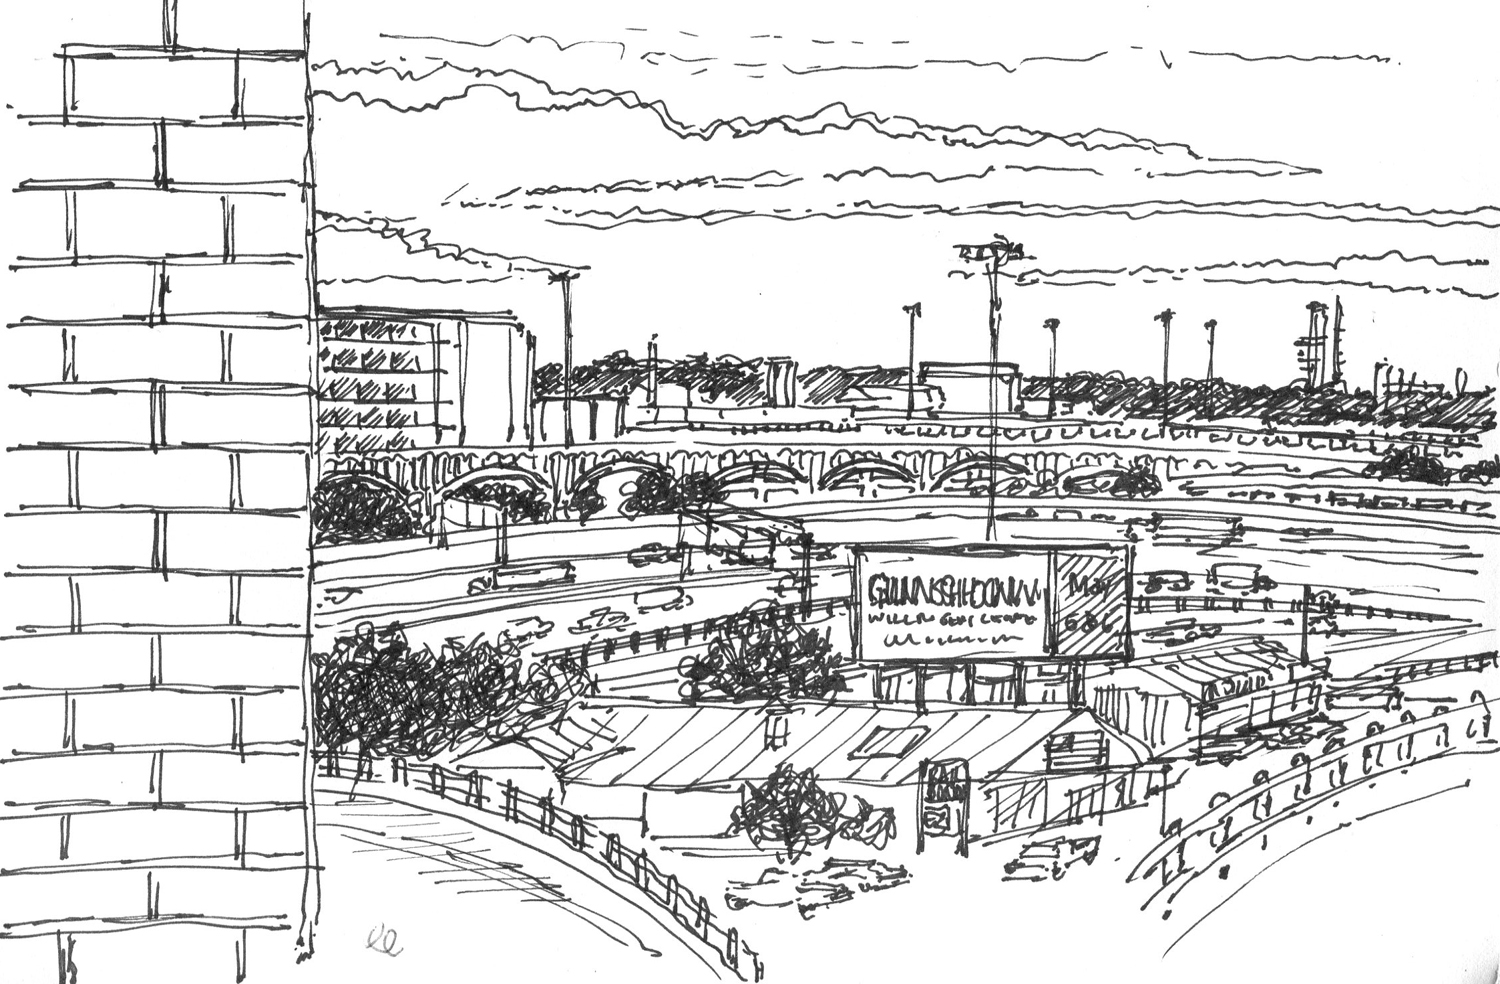 View from the Jury Waiting Area – Dallas, TX. Ink sketch by Gary Perrone.